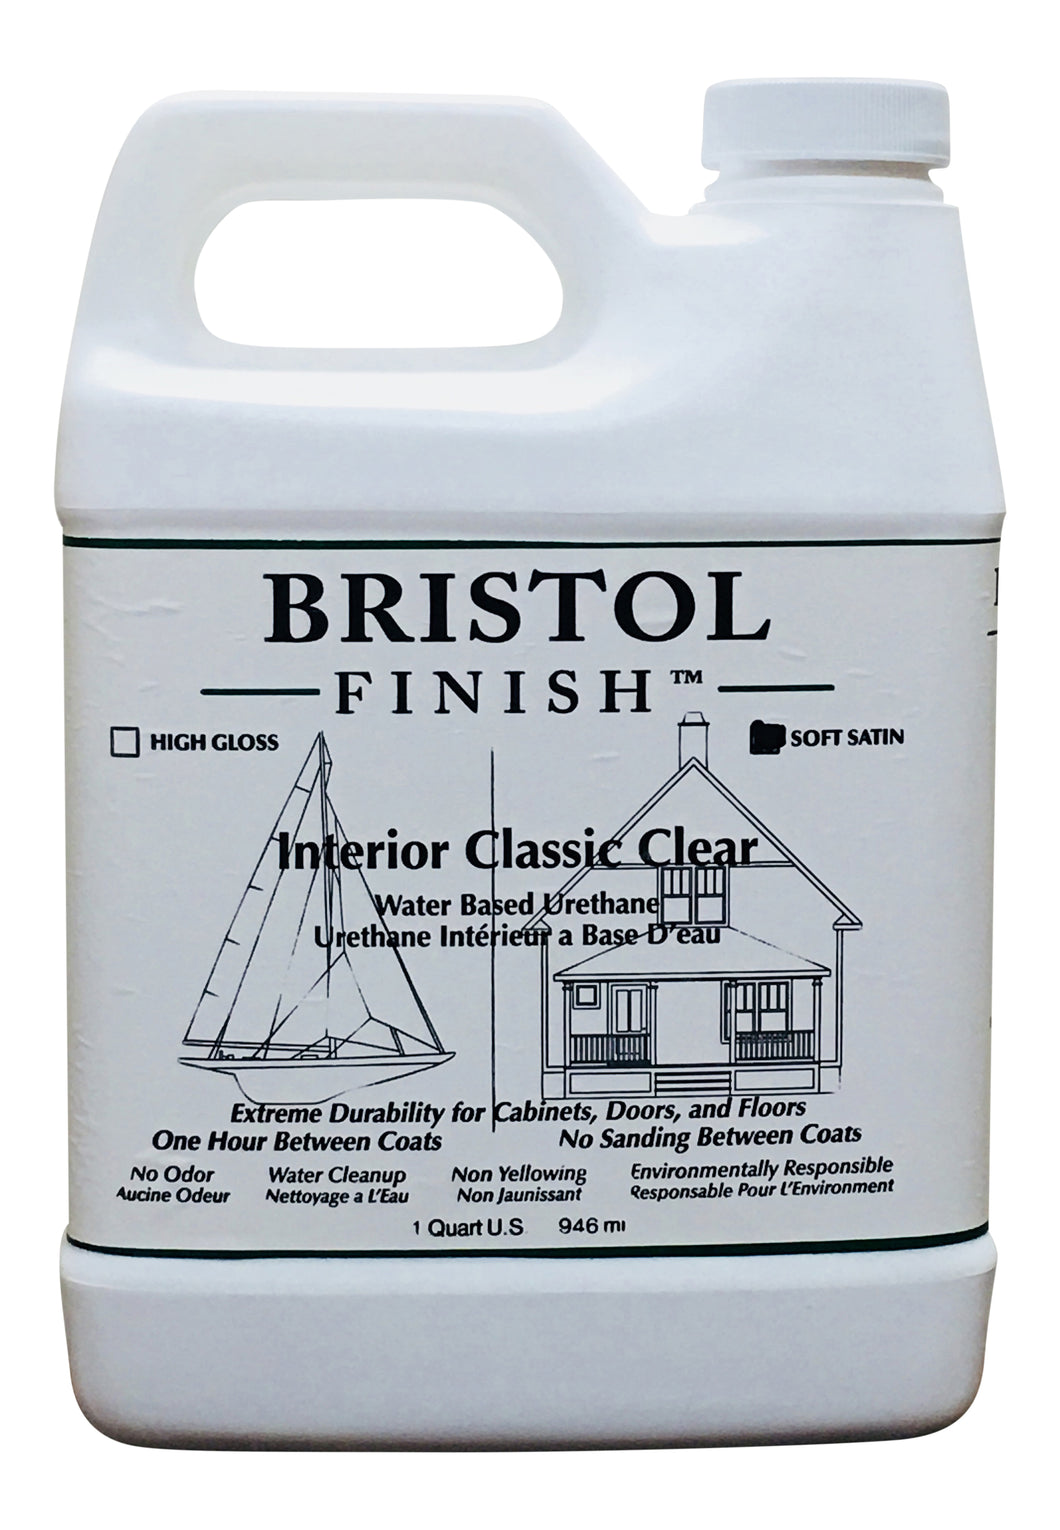 Bristol Finish Interior Classic Clear Water Based Urethane - Soft Satin Finish Quart